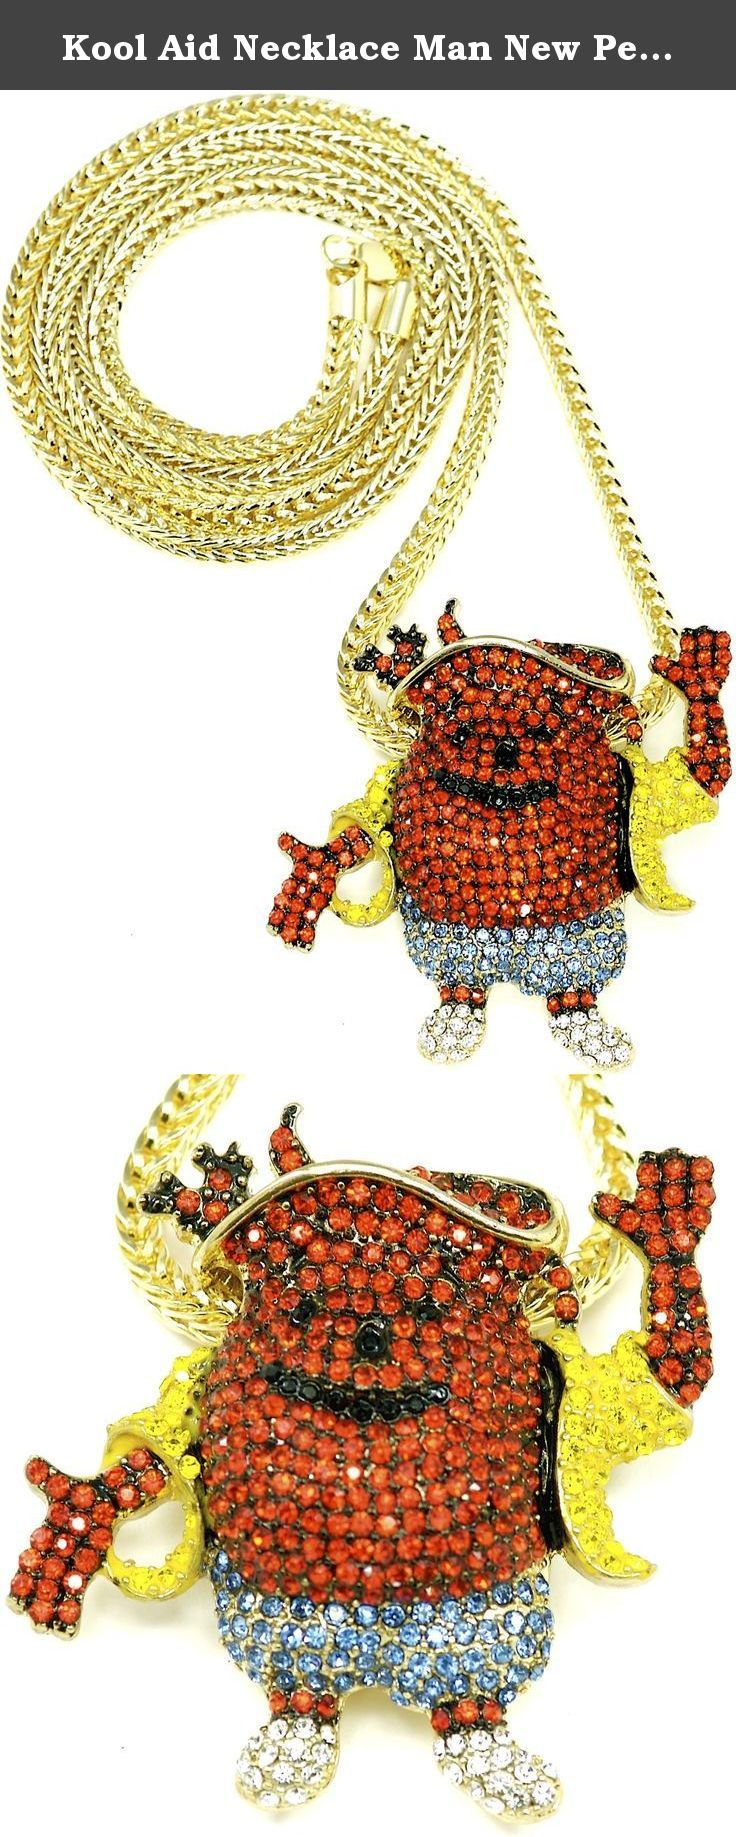 Kool Aid Necklace Man New Pendant With Gold Color 36 Inch Franco Style Chain. Iced Out Pendant Necklace Piece. Iced out in gold, blue, red, black, and silver color crystal rhinestones. Gold color Franco style 36 inch, 4mm chain with lobster claw clasp. Well crafted pendant measures 2.5 inches by 2.5 inches. Your satisfaction is guaranteed.